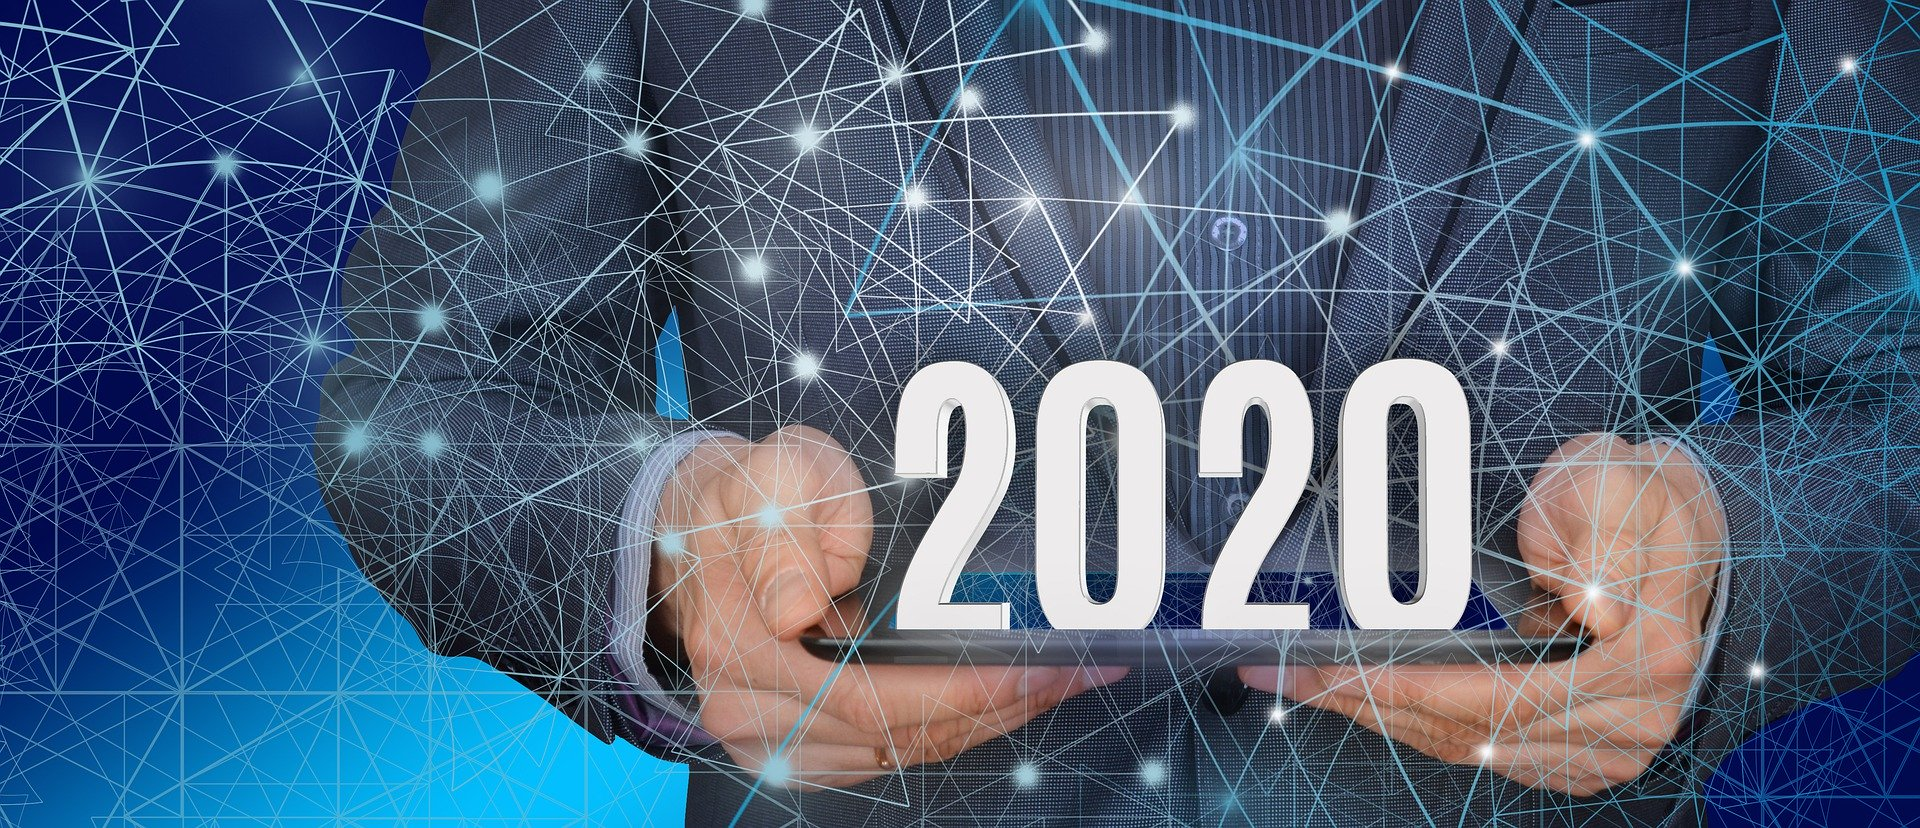 Top Events Of 2020.Top Regtech Events In 2020 Planet Compliance